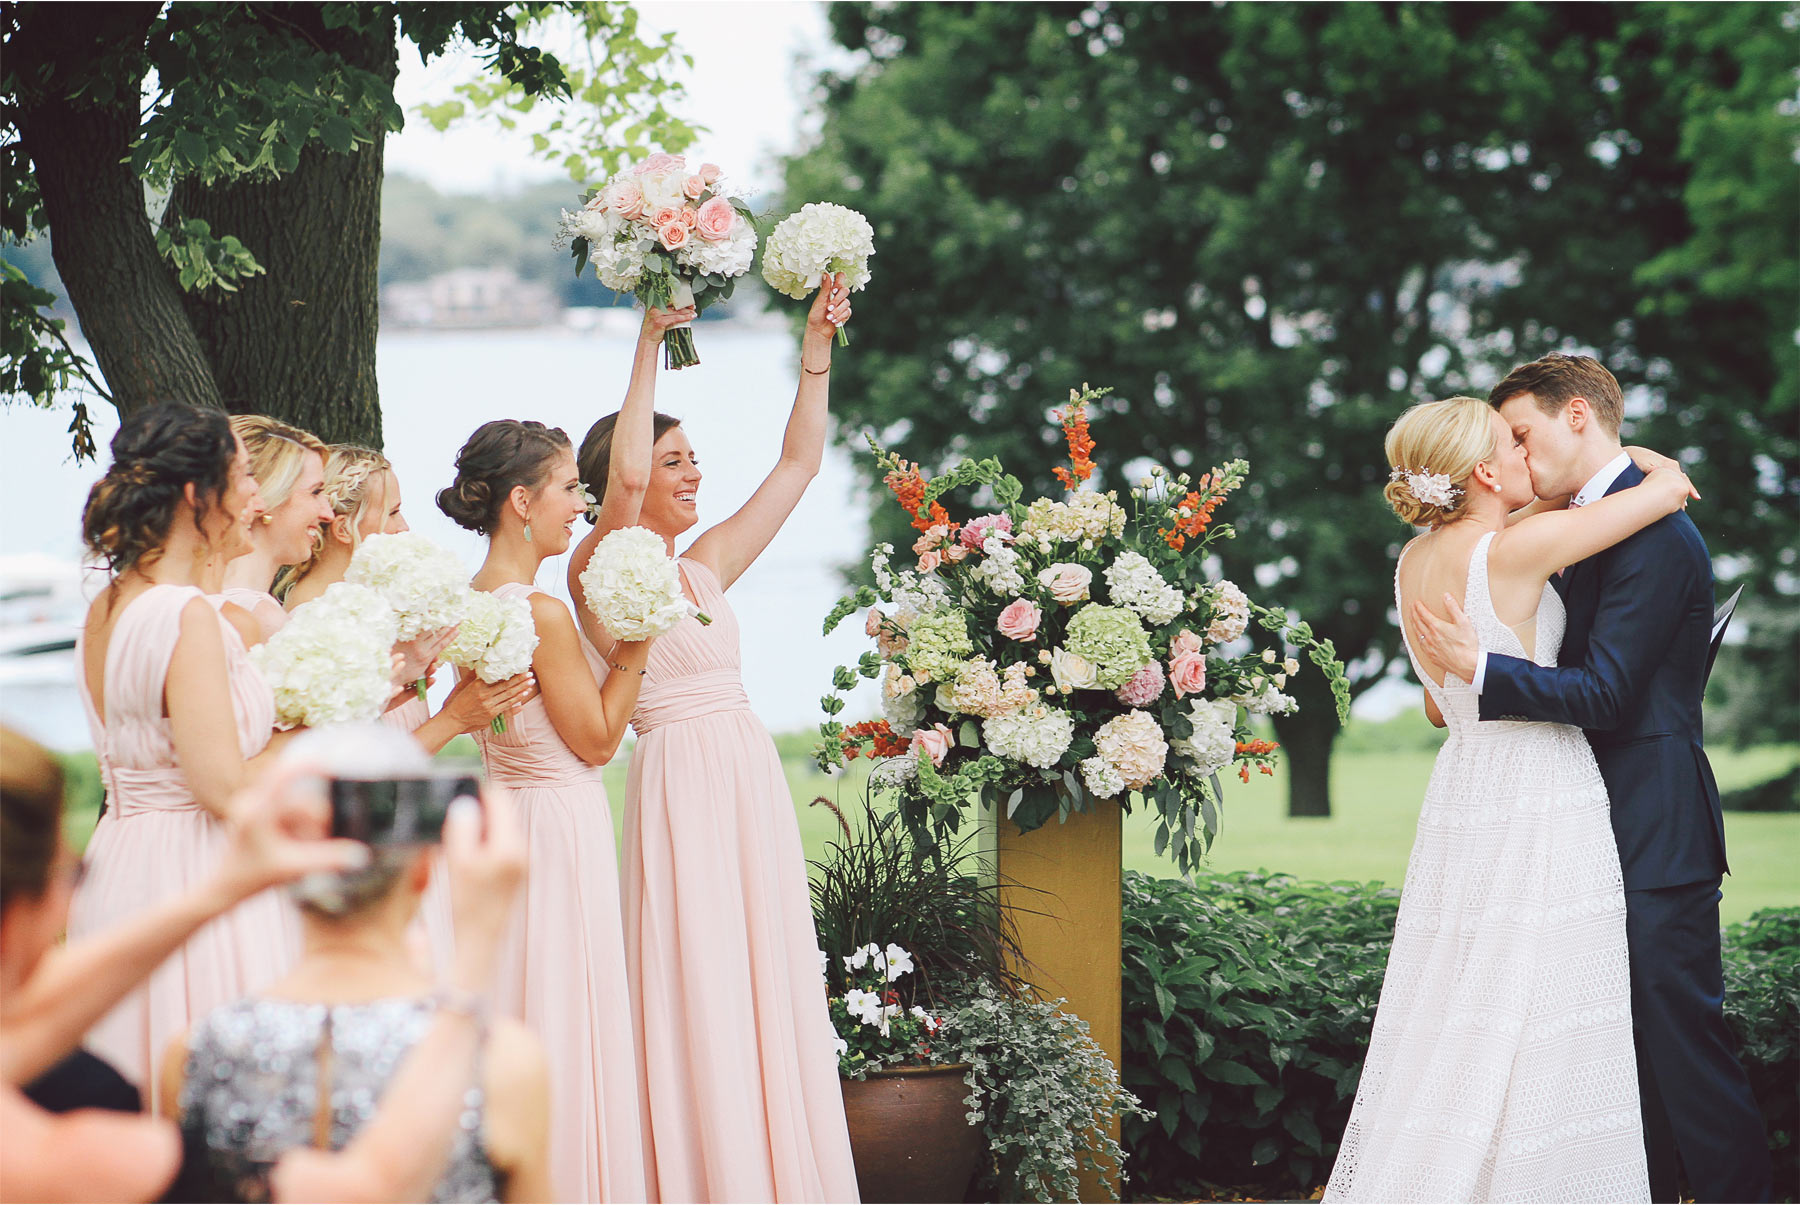 12-Minneapolis-Minnesota-Wedding-Photography-by-Vick-Photography-Lafayette-Club-Outdoor-Ceremony-Kiss-Cheering-Maggie-and-Nicholas.jpg